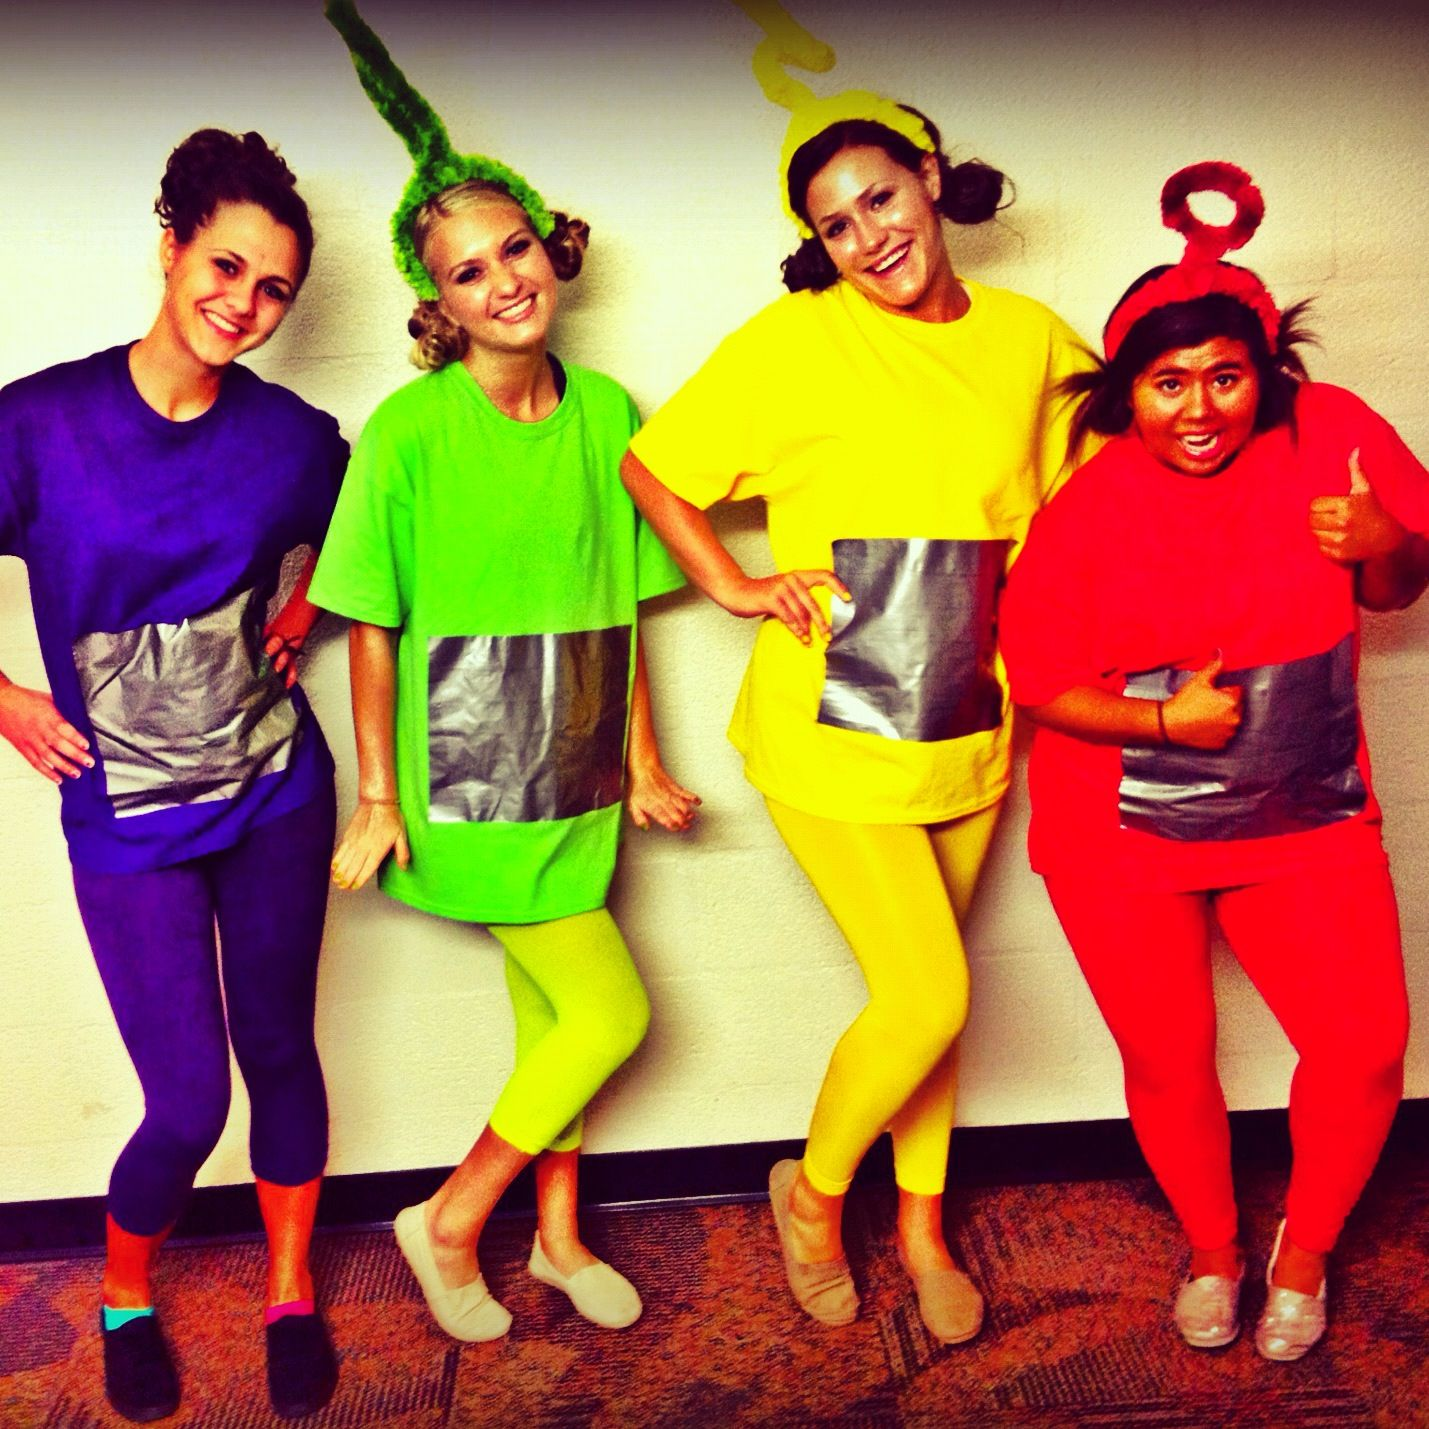 Homemade teletubbies Halloween costume and these are my FRIENDS!!! Love  them!!!! ) )